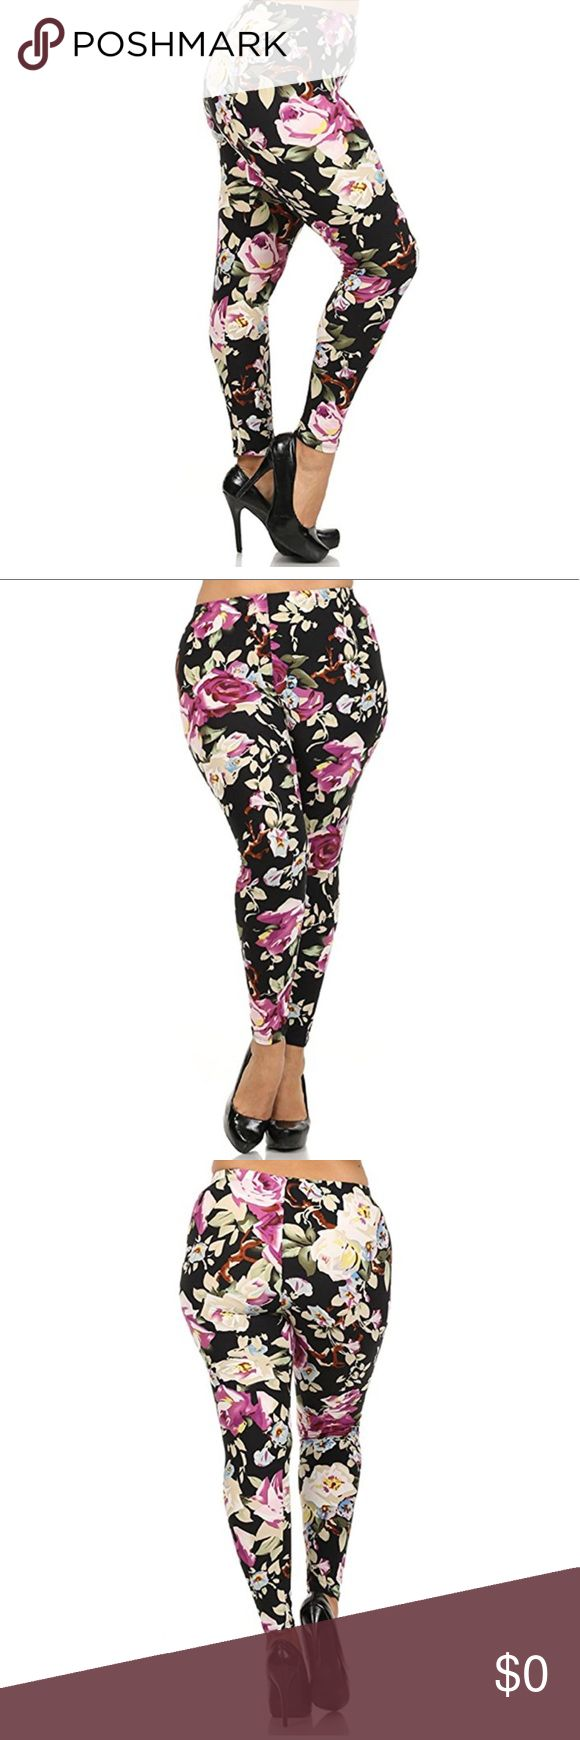 Plus Size Leggings Plus Size Beautiful Floral Leggings. The options are limitless with these! 92% Polyester, 8% Spandex Pants Leggings